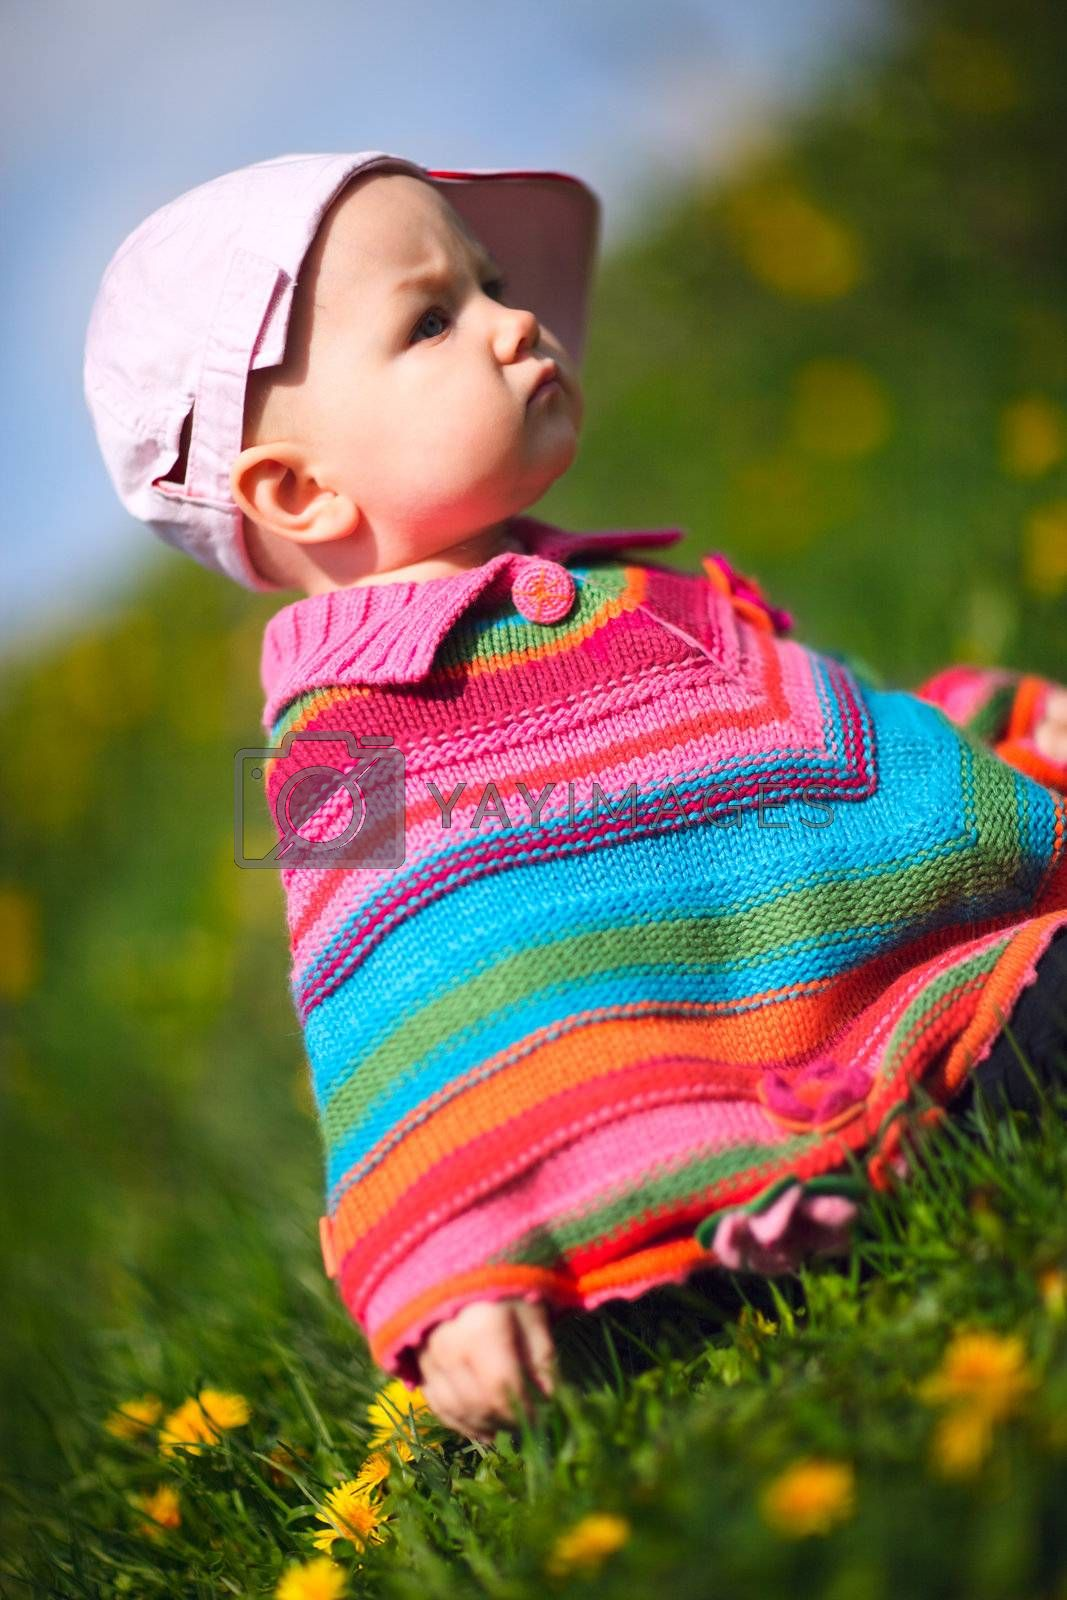 Cute baby girl sitting on grass